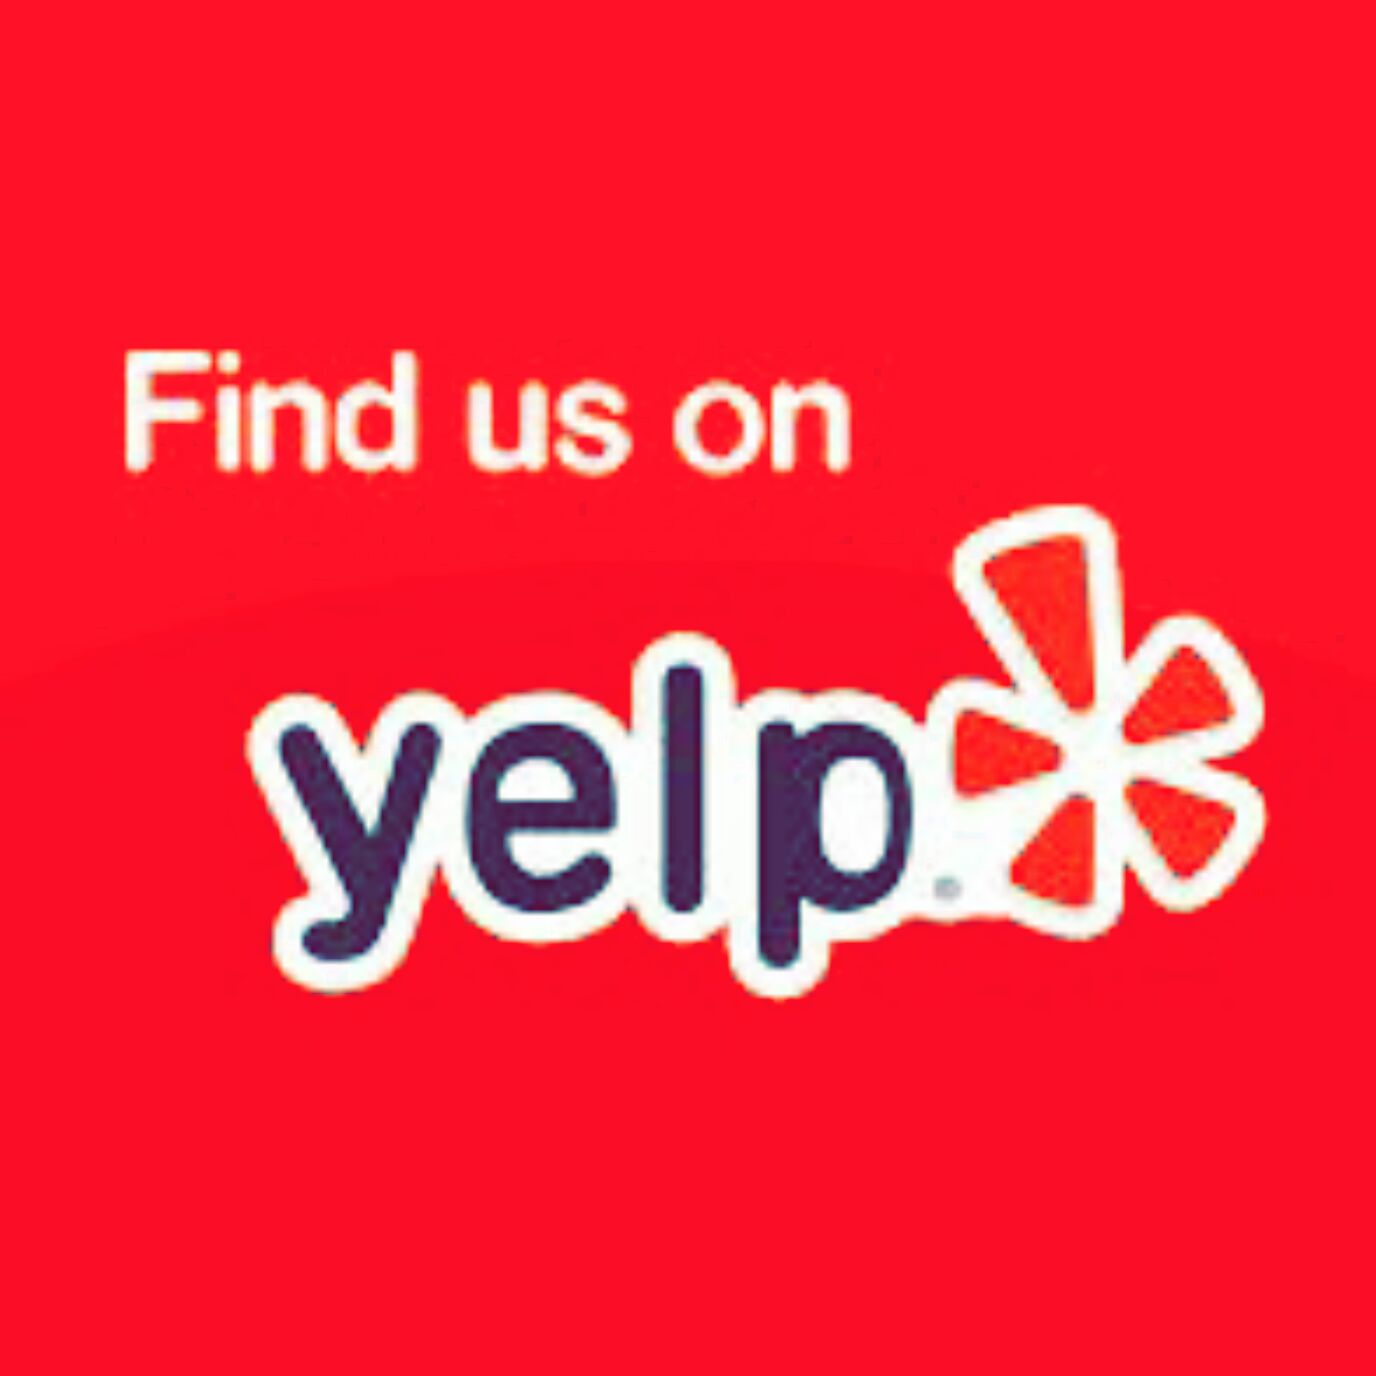 Find us on Yelp, Give us a Review spread the word about PLS Locksmith services... http://m.yelp.com/biz/pls-locksmith-and-security-coral-springs